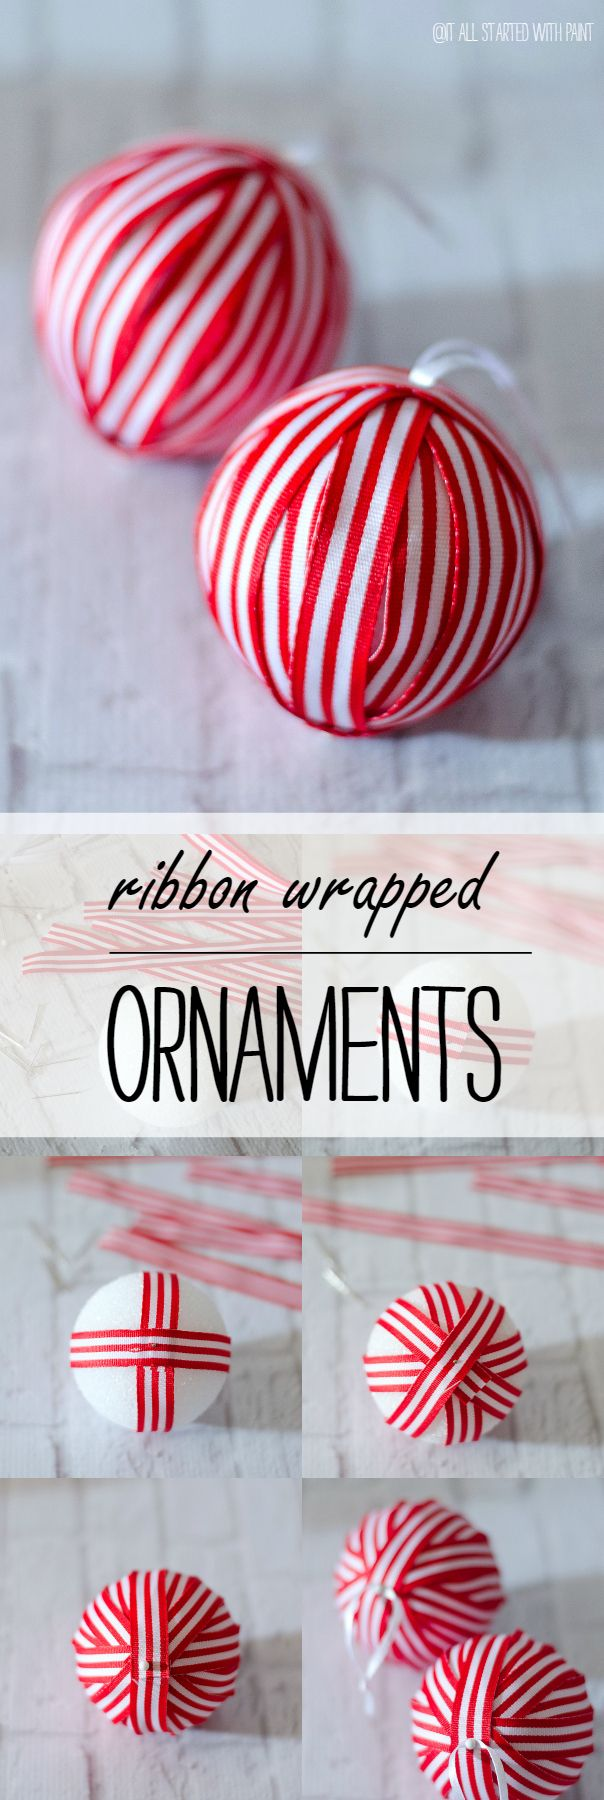 Christmas Craft Ideas: Handmade Red & White Ribbon Ornaments DIY Project - Great project to do with the kids!